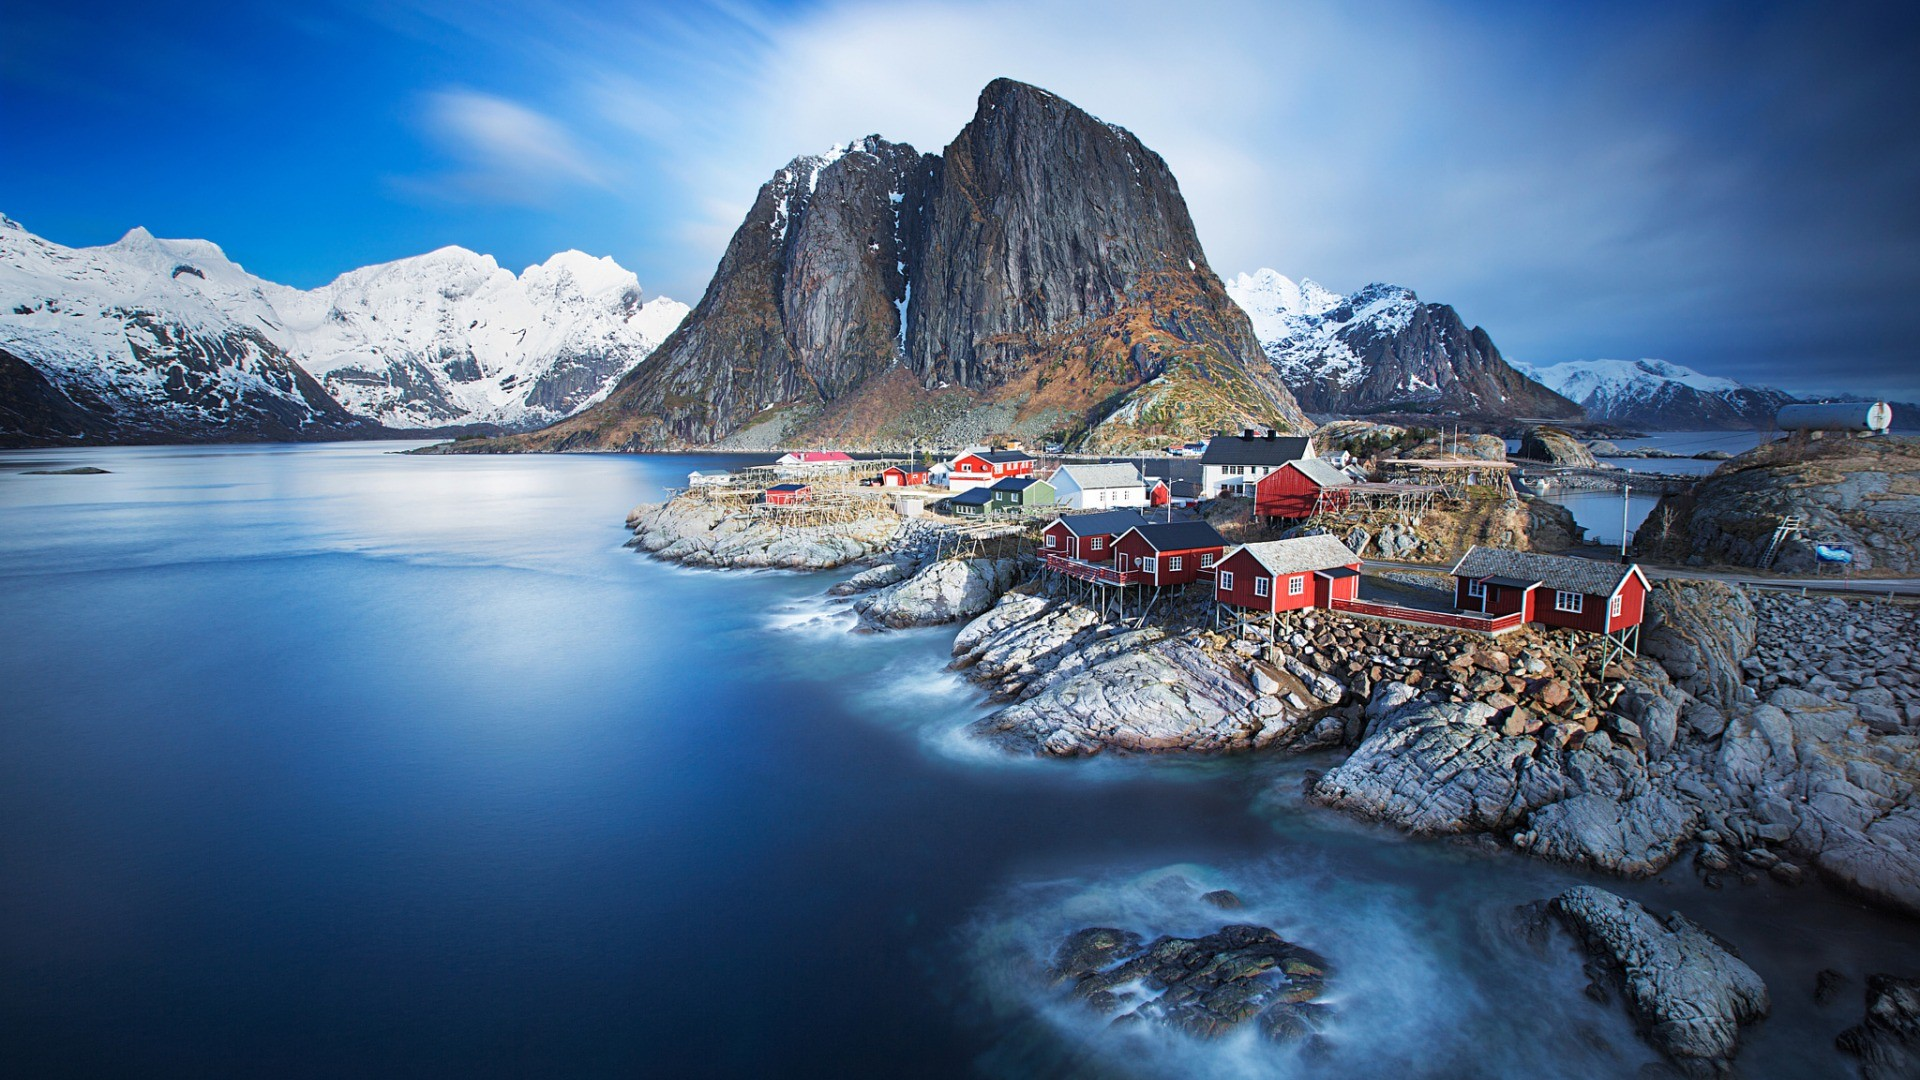 General 1920x1080 nature landscape mountains trees rock water Lofoten Norway sea bay fjord snow snowy peak house village long exposure waves clouds